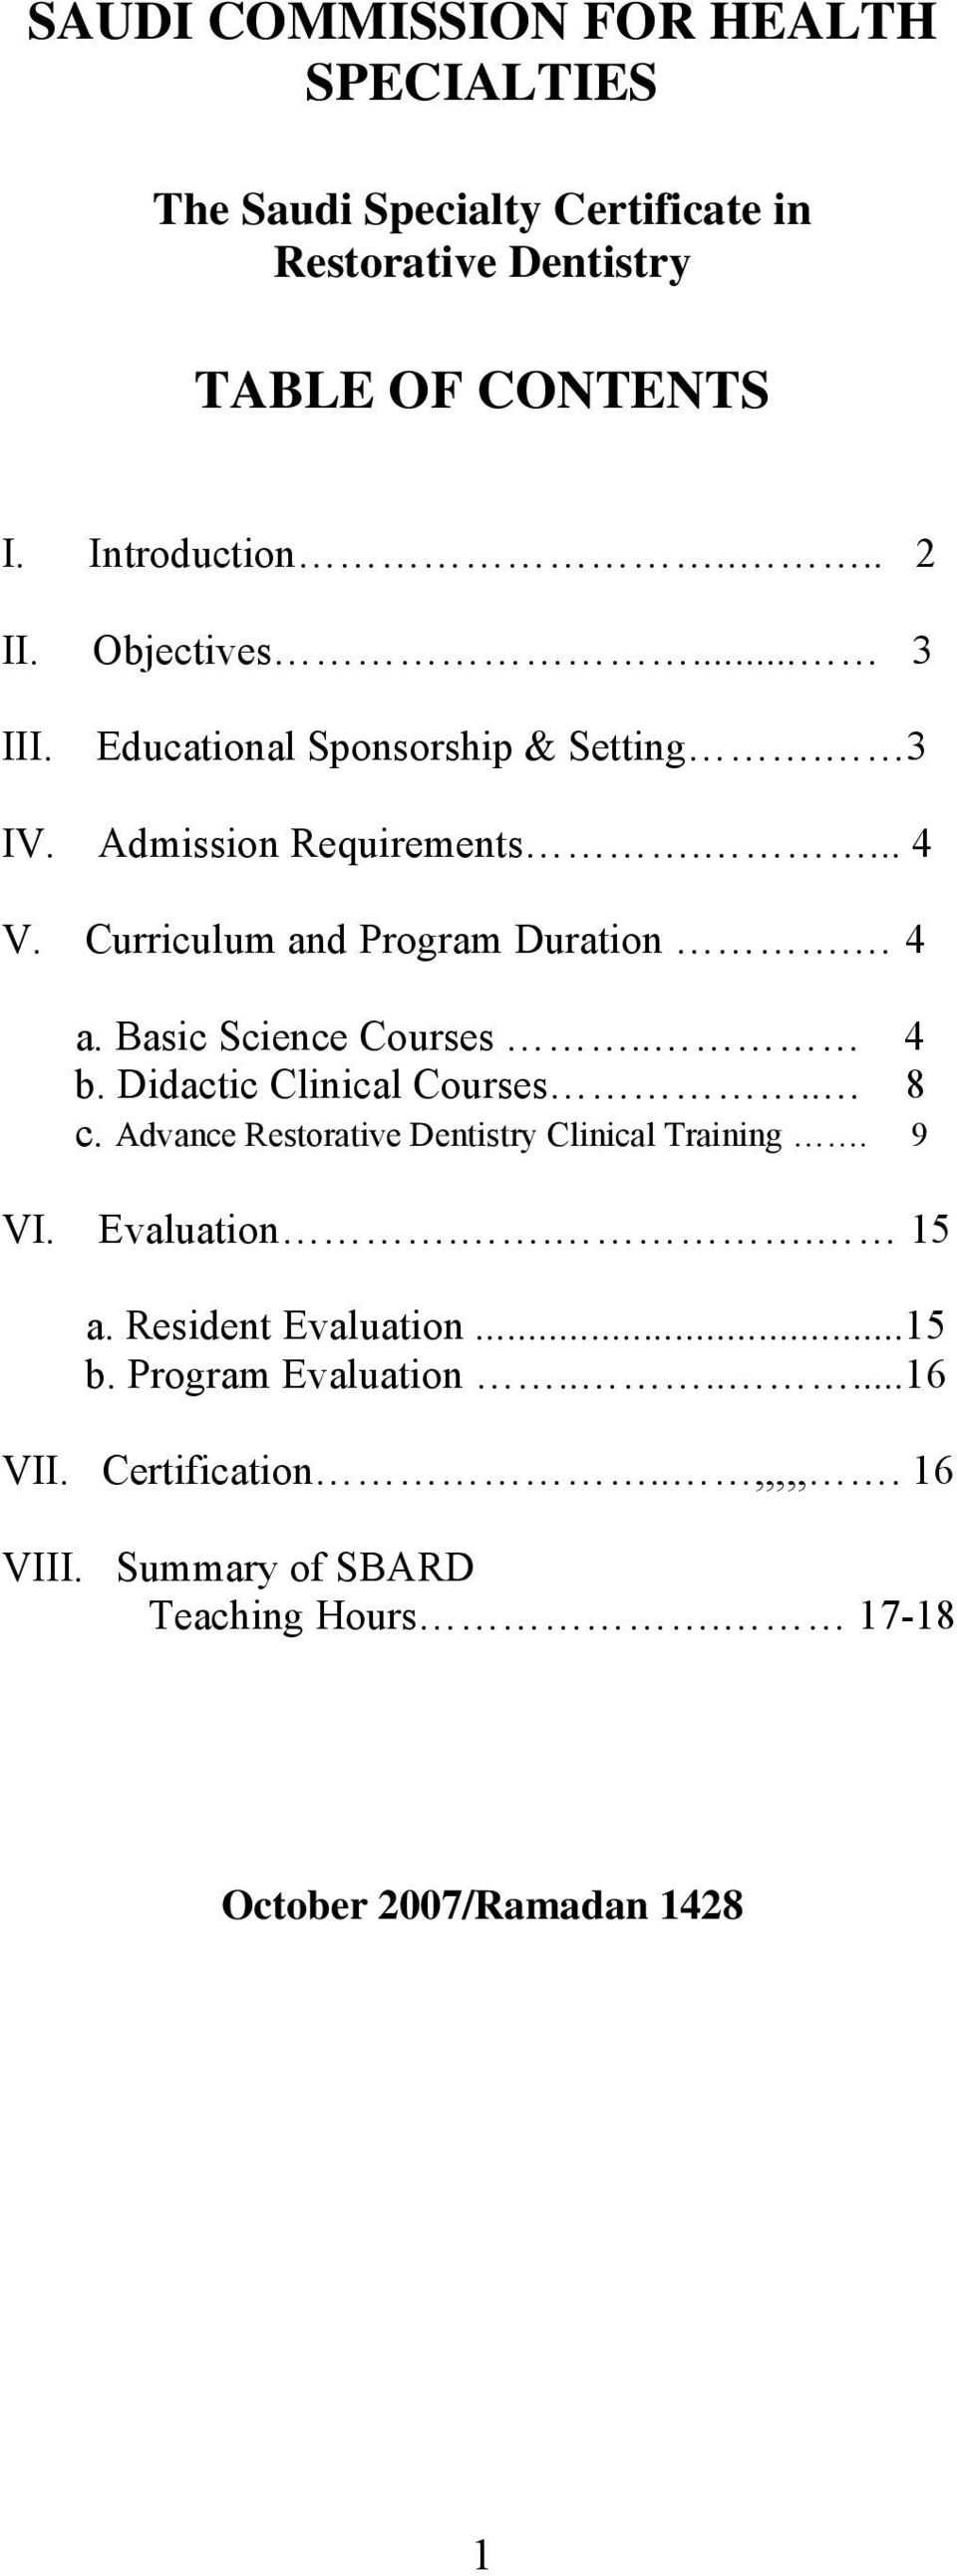 Basic Science Courses.. 4 b. Didactic Clinical Courses.. 8 c. Advance Restorative Dentistry Clinical Training. 9 VI. Evaluation... 15 a.